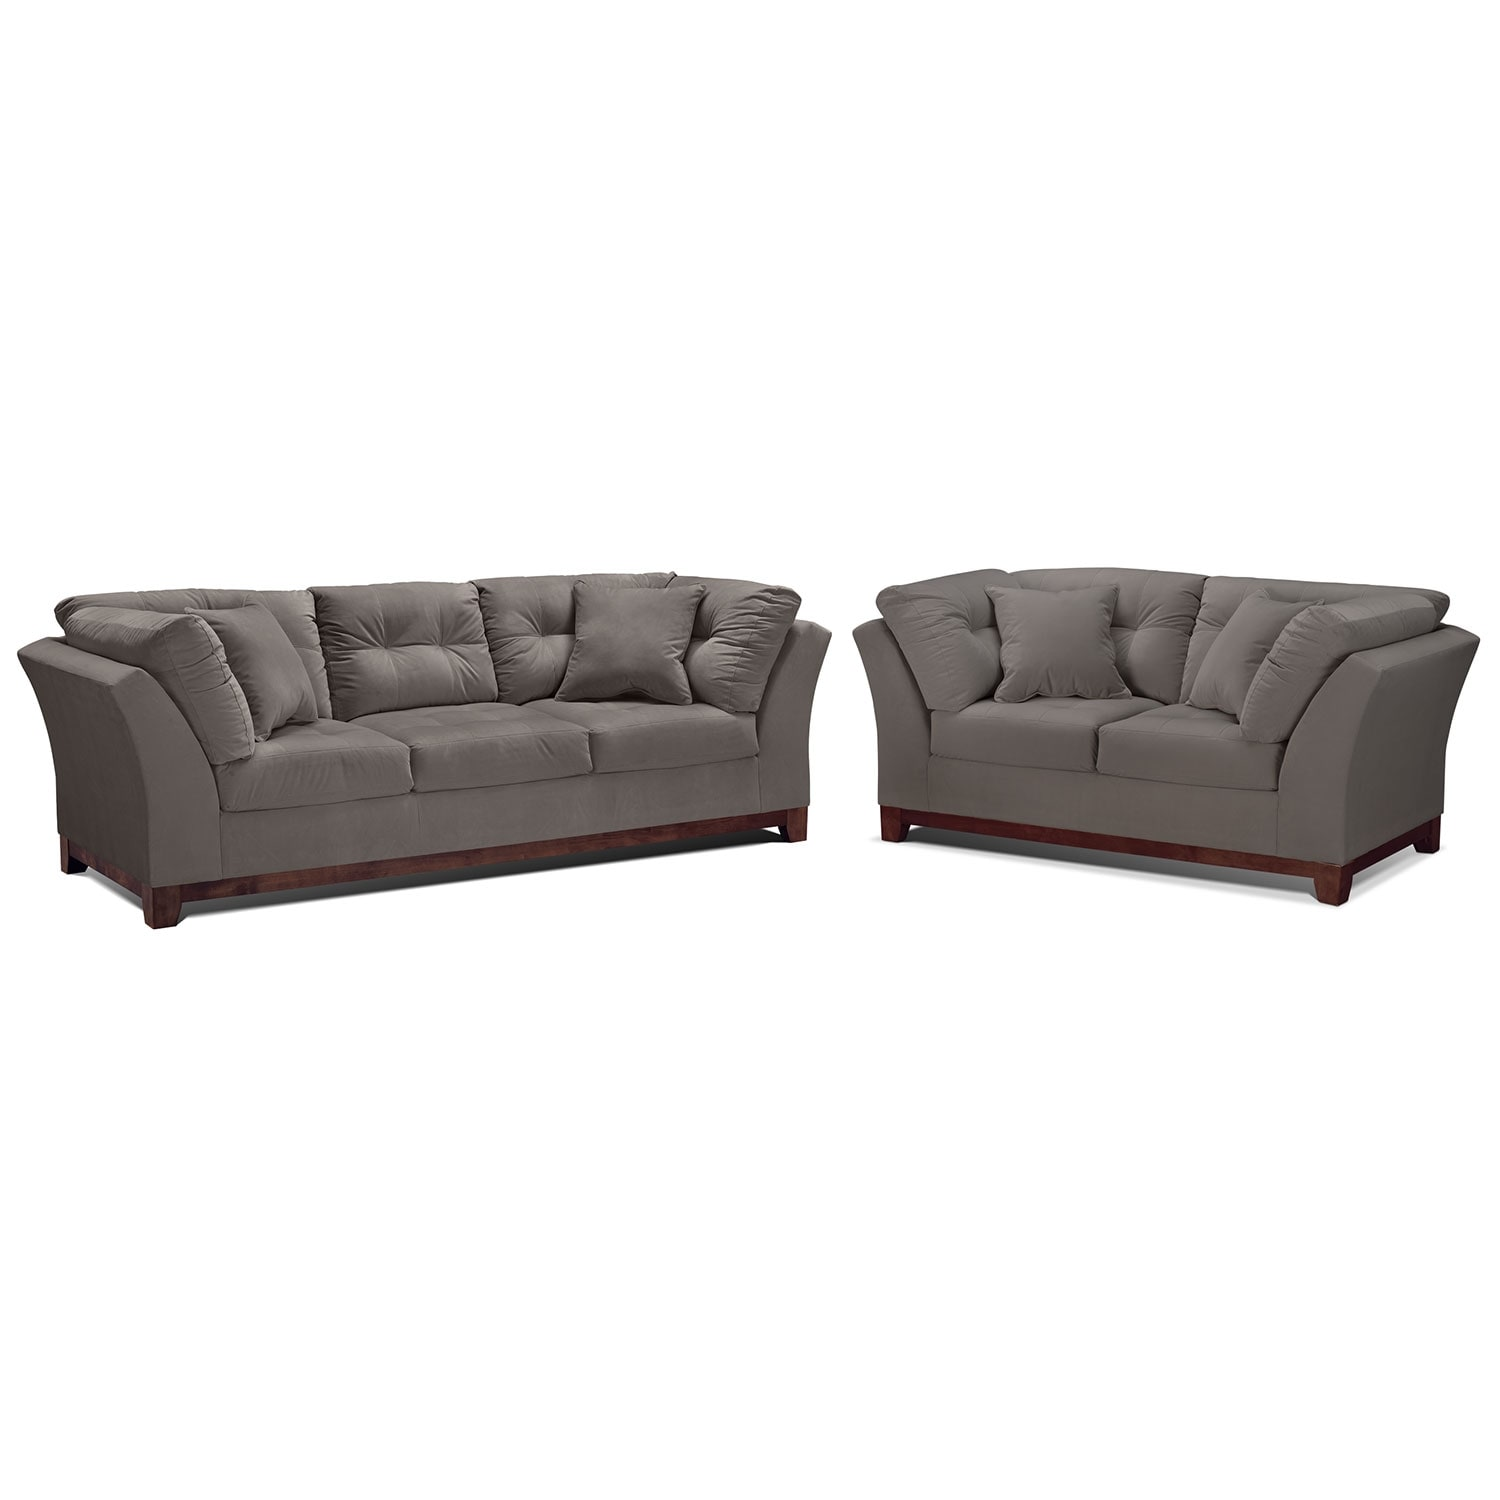 Living Room Furniture - Solace Gray 2 Pc. Living Room